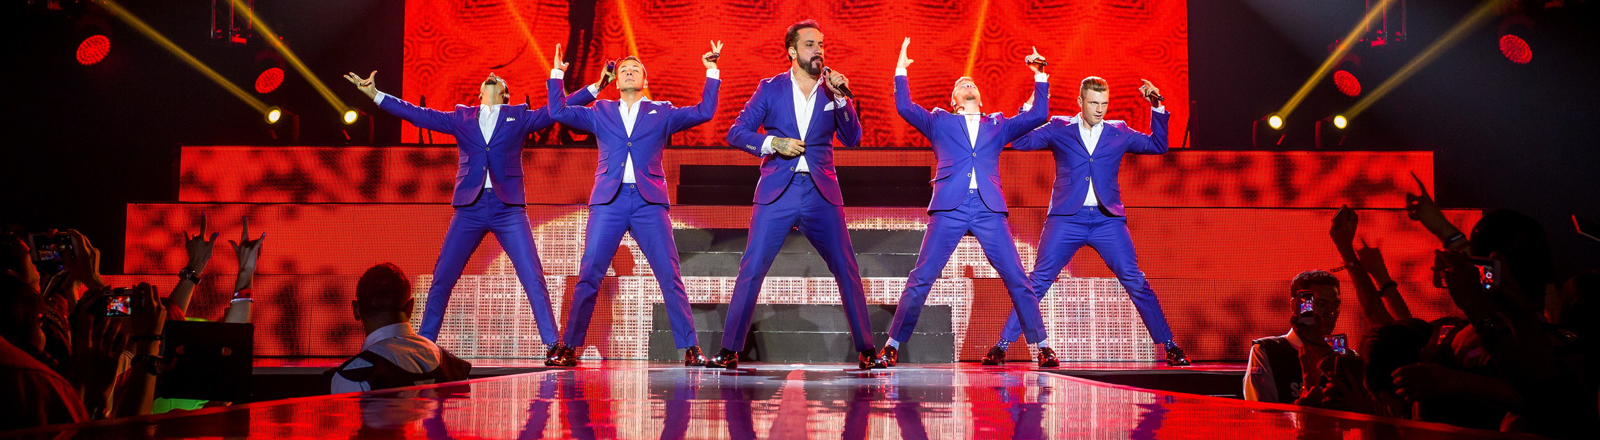 Revival der Backstreet Boys, Konzert in Macau, China